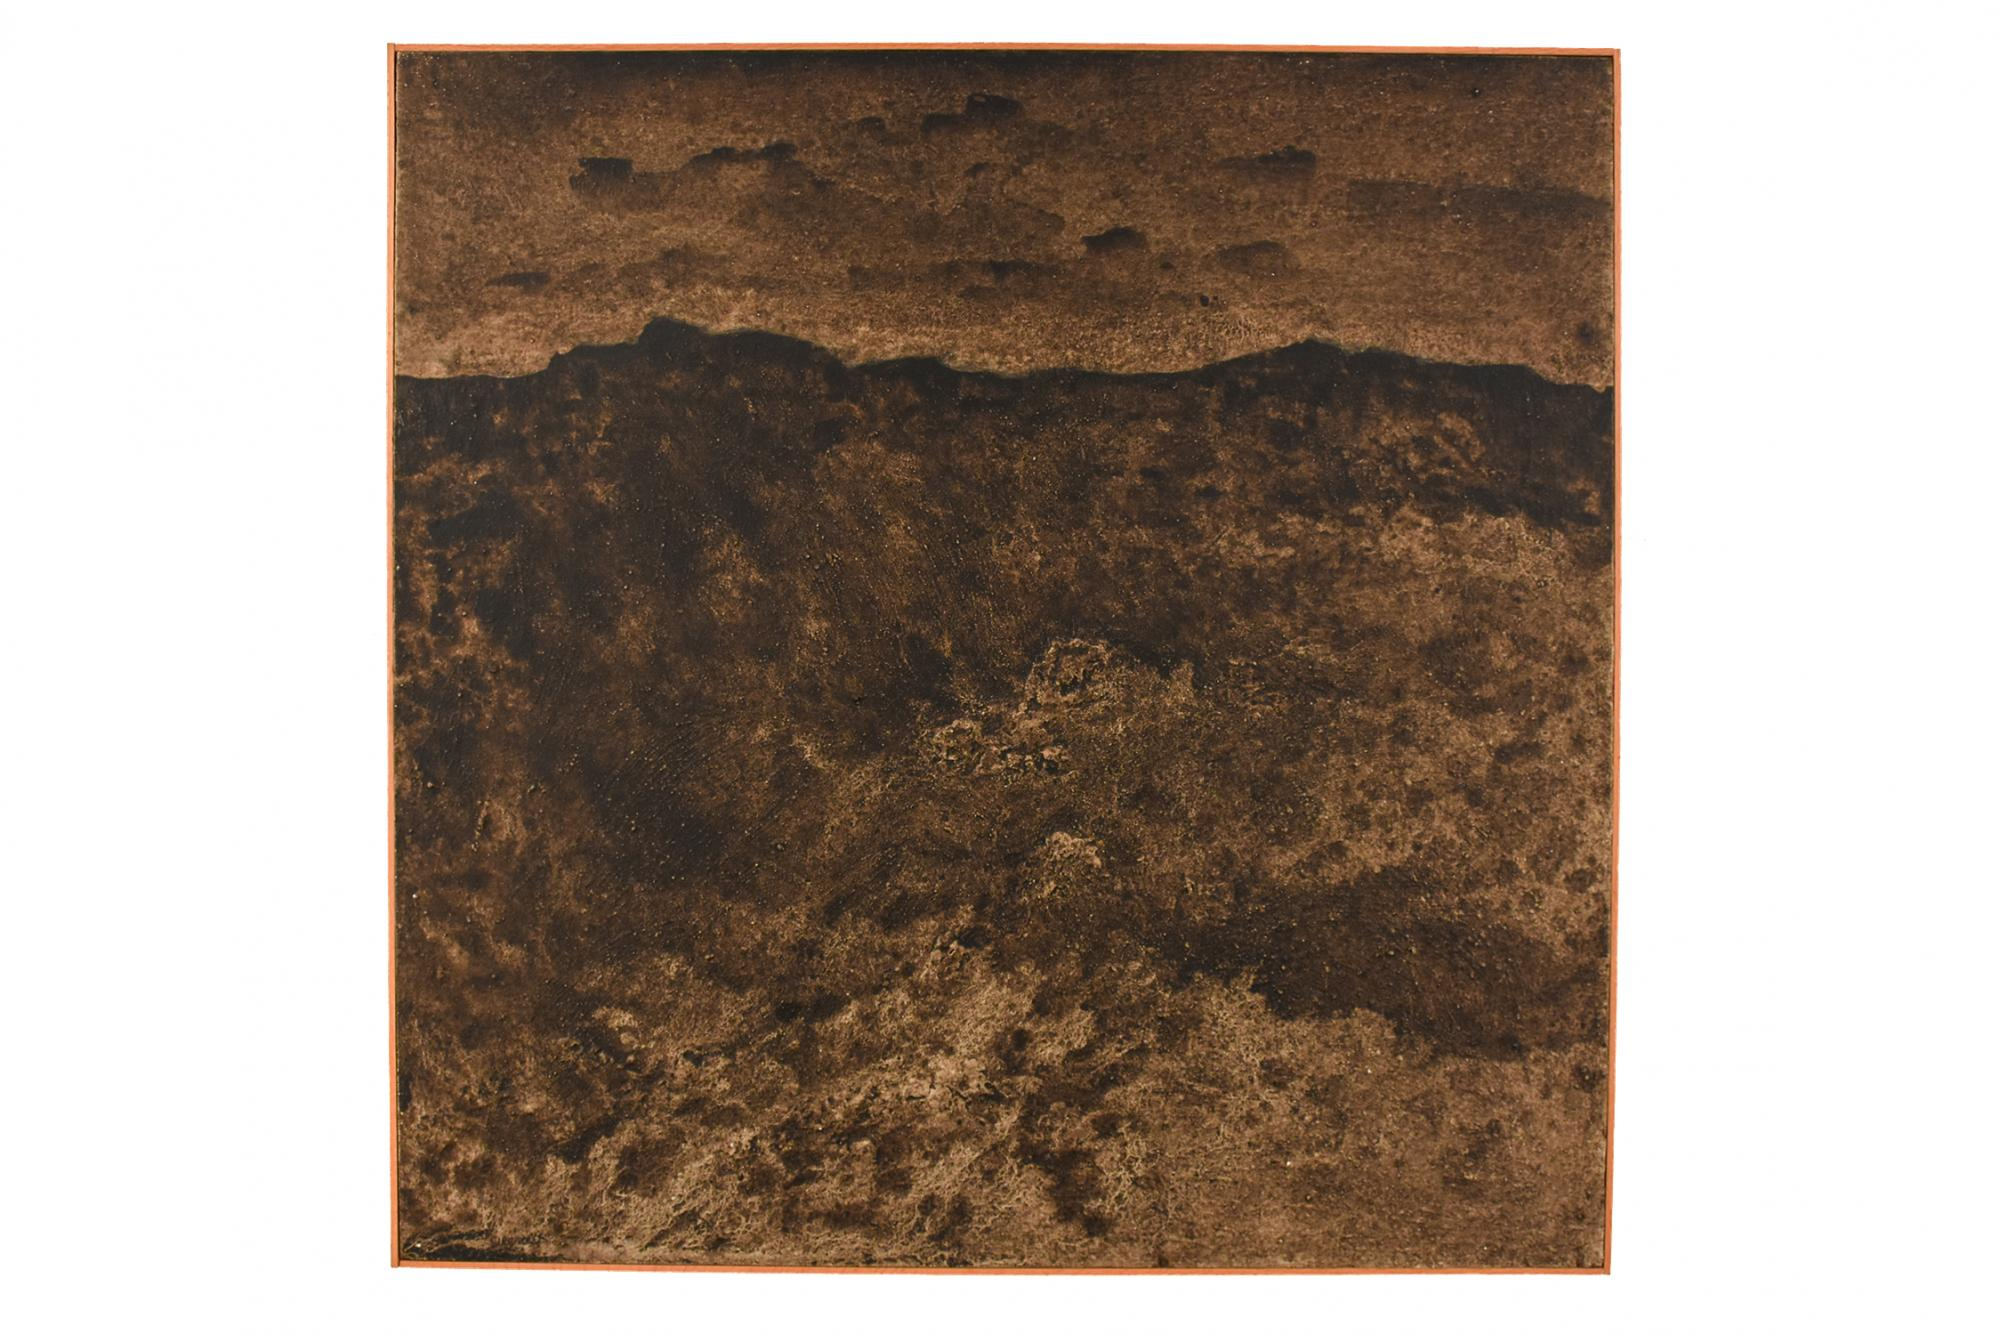 Louis Siegriest (1899-1989) United States, Cimarron Canyon, 1973, Asphalt, gypsum, and oil (mixed media) Gift of Suzanne and Laurellee Westaway [2012.14;109]